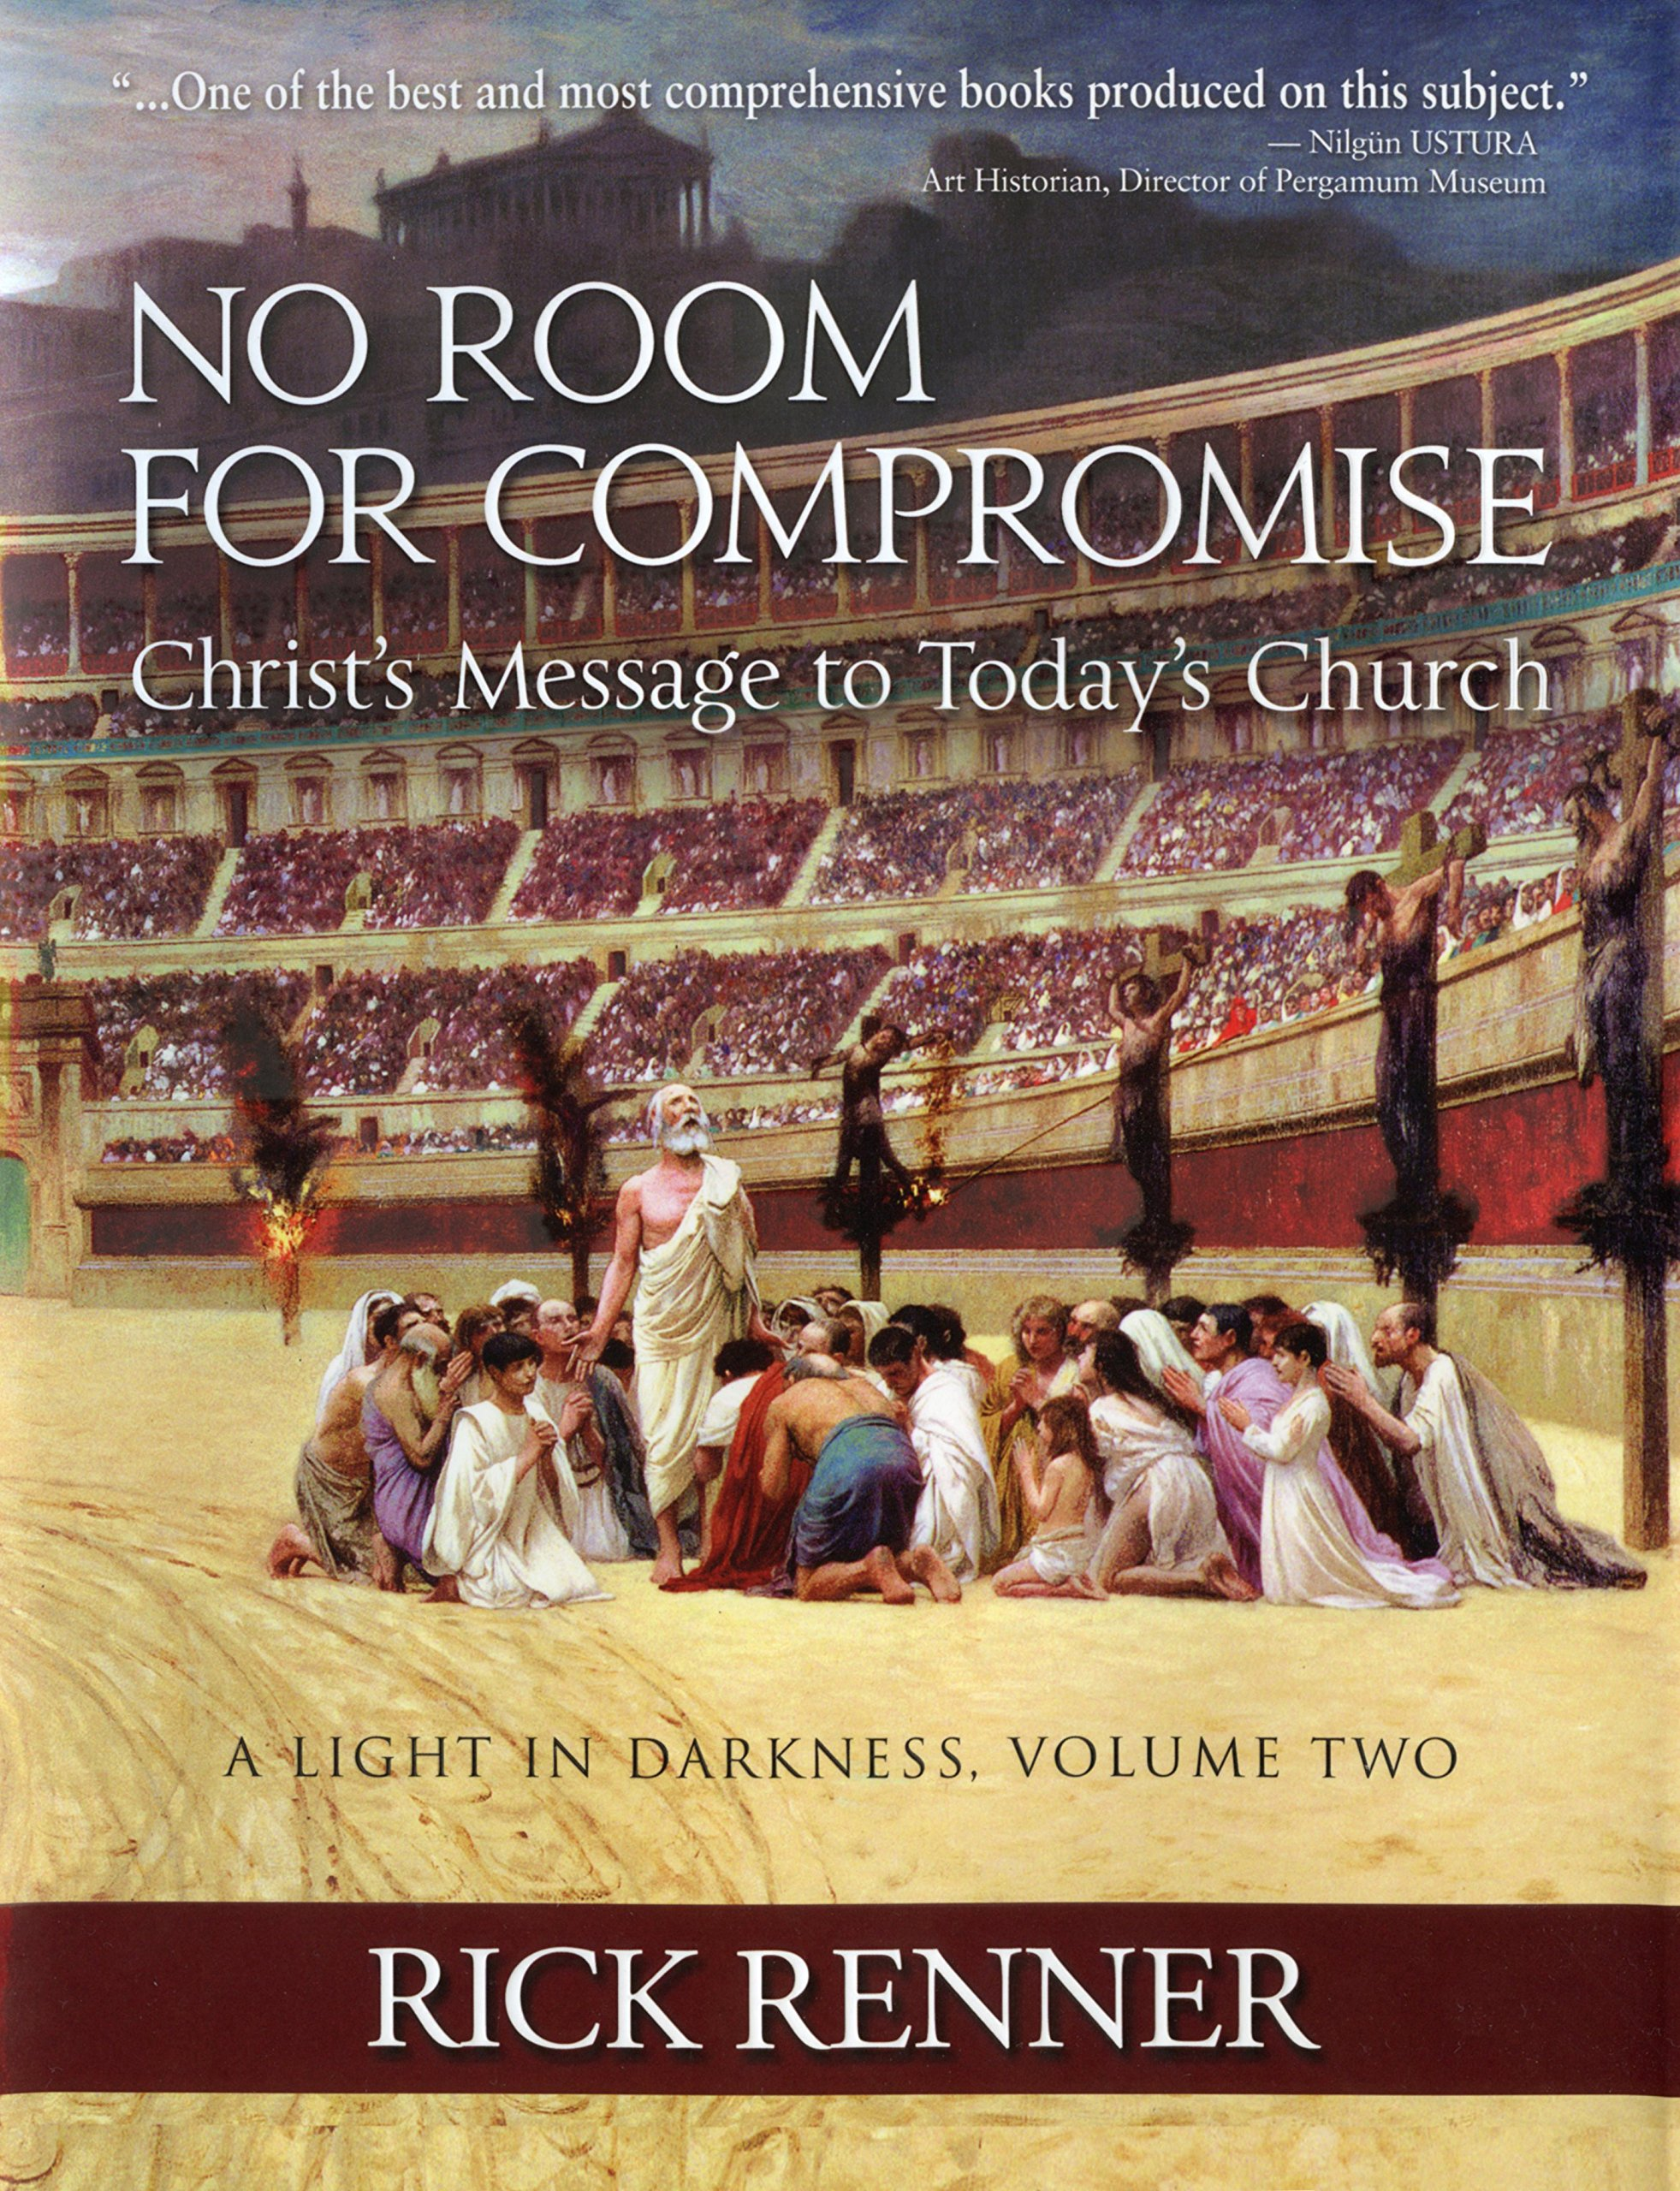 No Room for Compromise, A Light In Darkness, Volume 2: Christ's Message to Today's Church